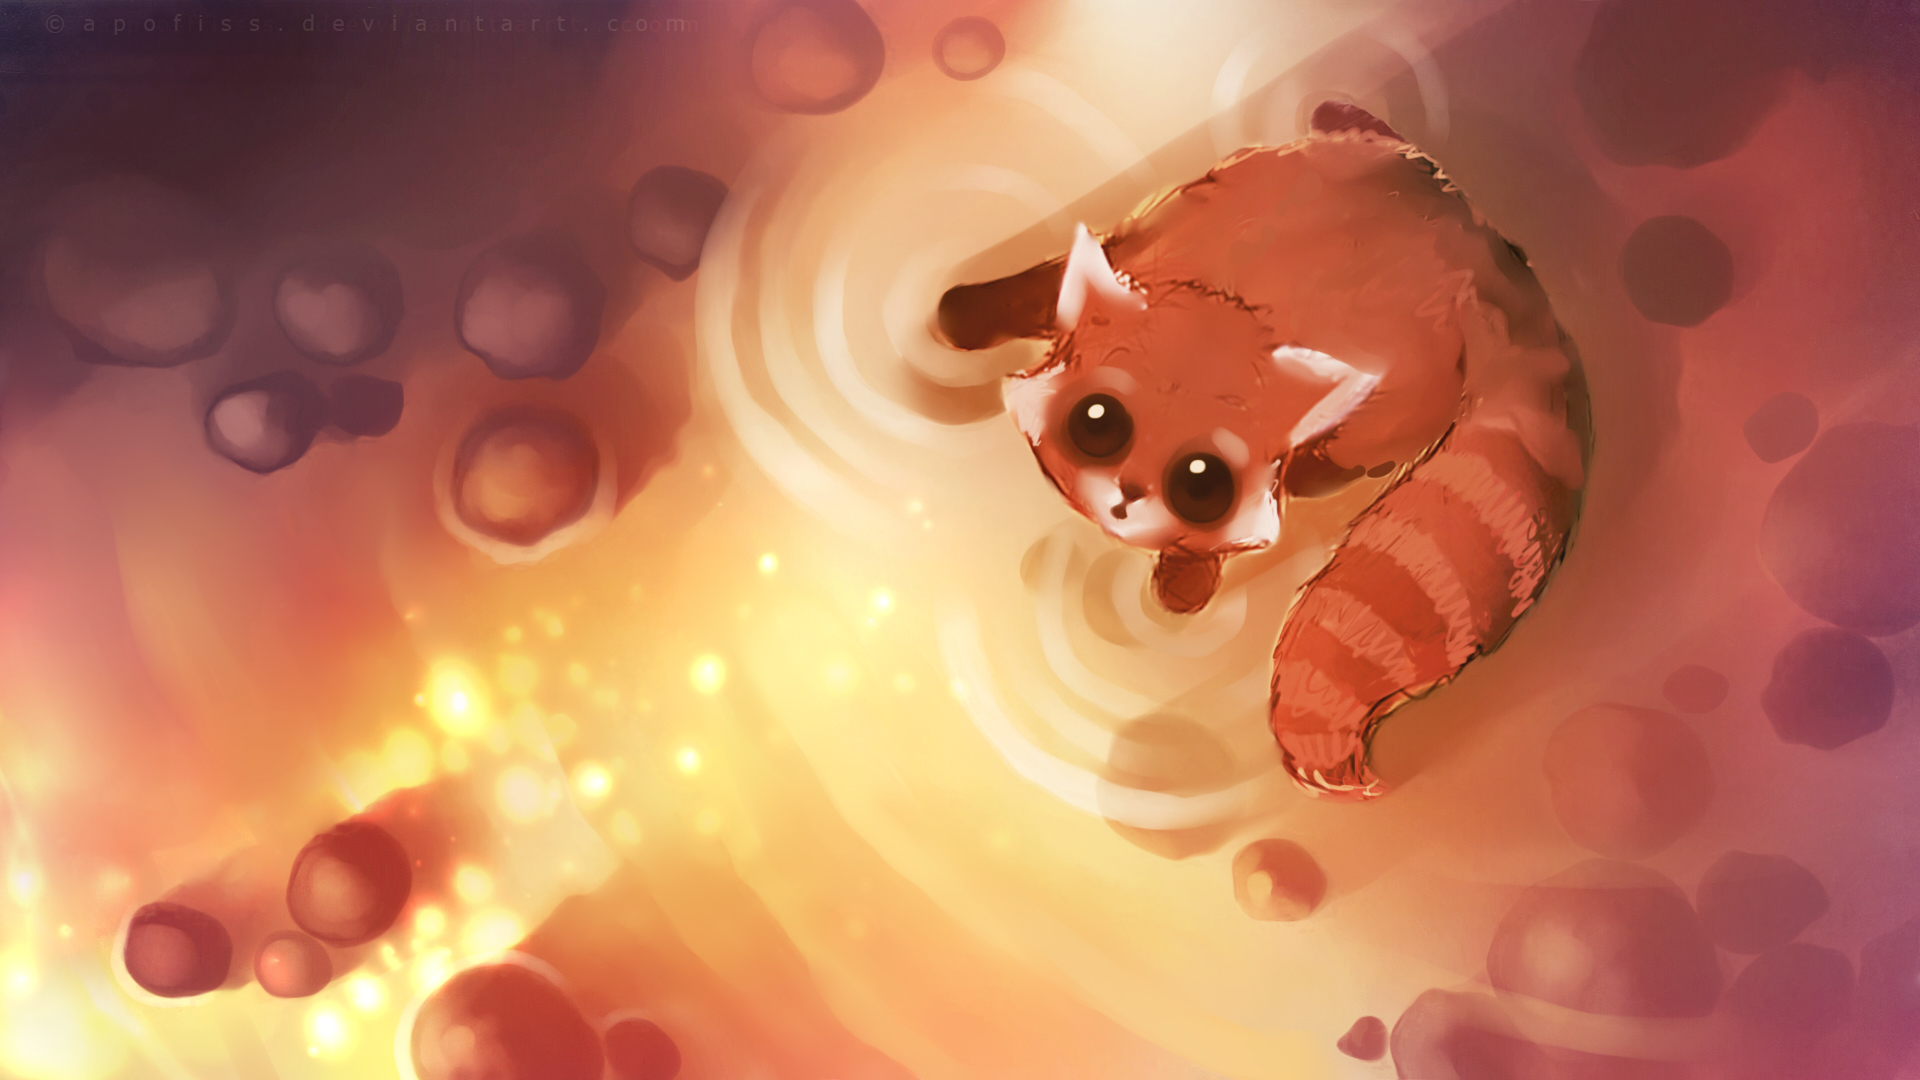 Apofiss Animals Images Red Panda HD Wallpaper And Background Photos